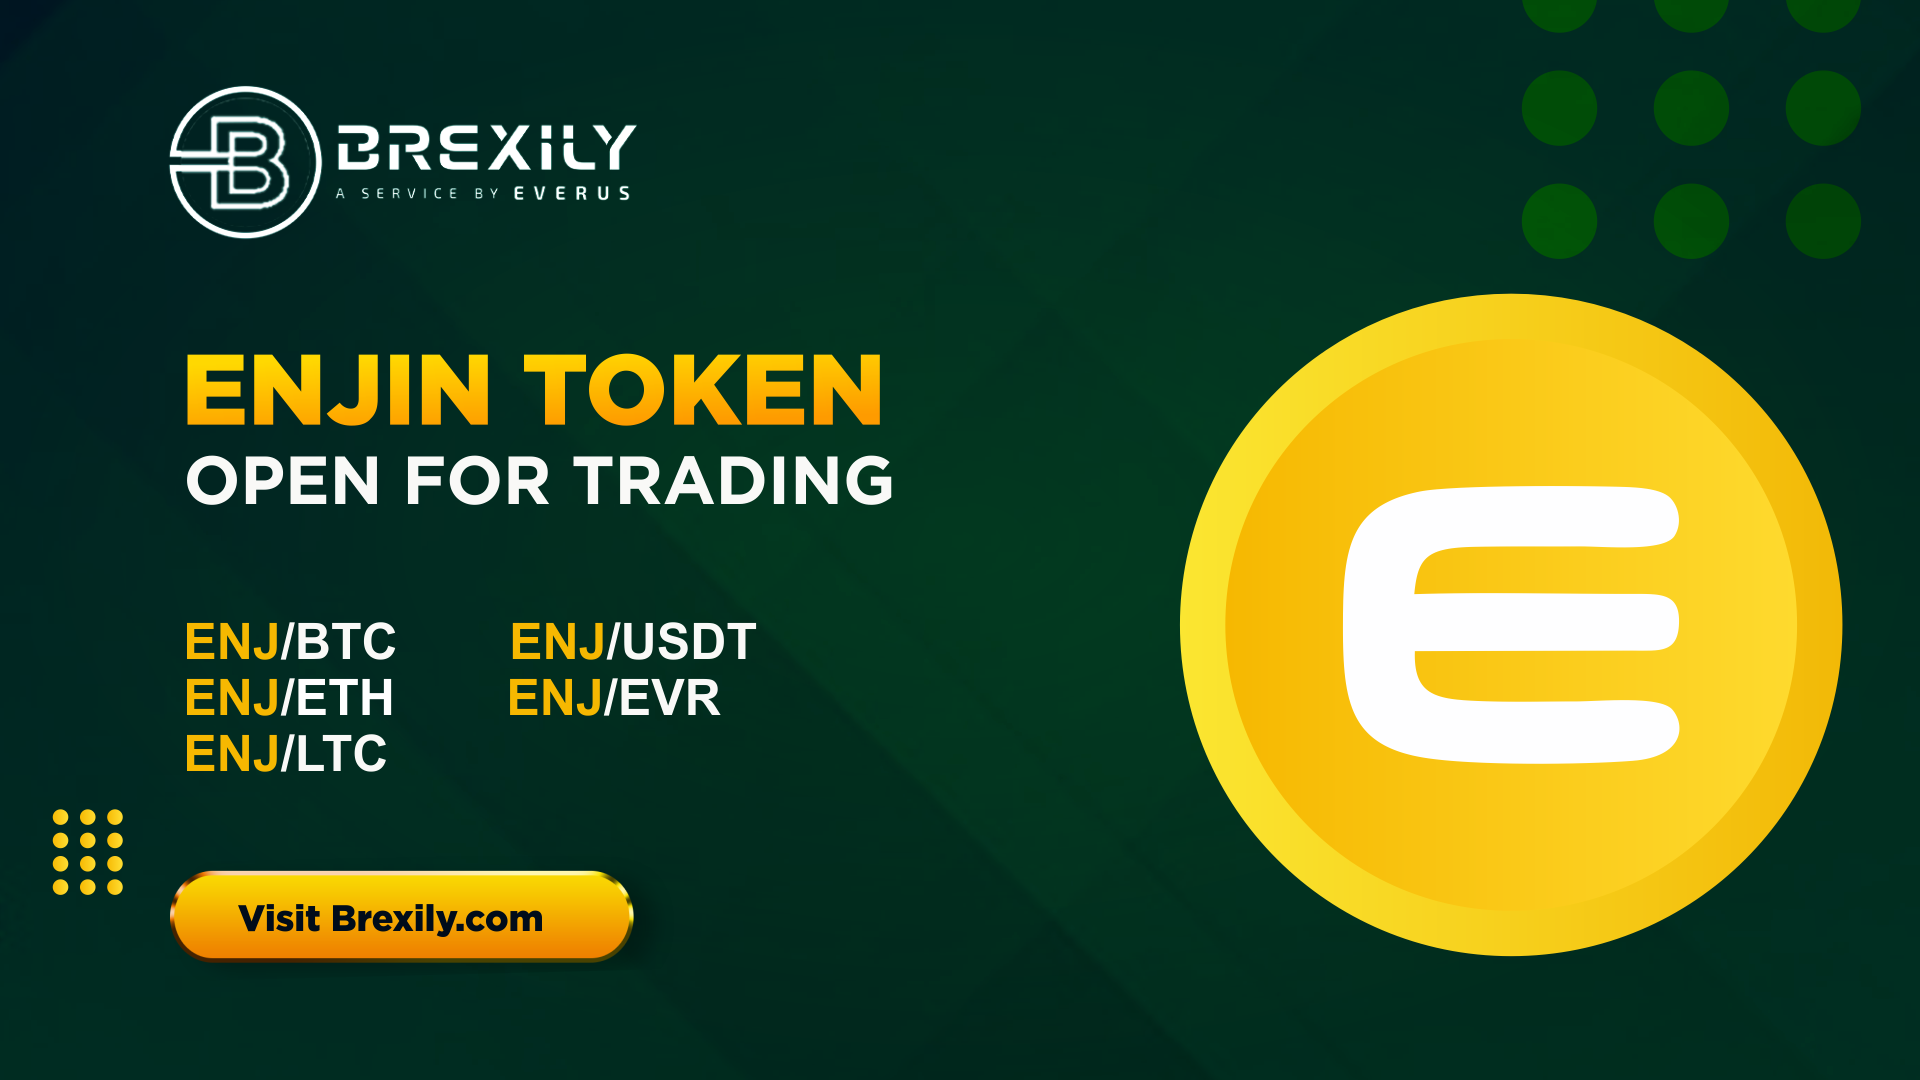 Enjin Token has been listed on BREXILY - Brexily